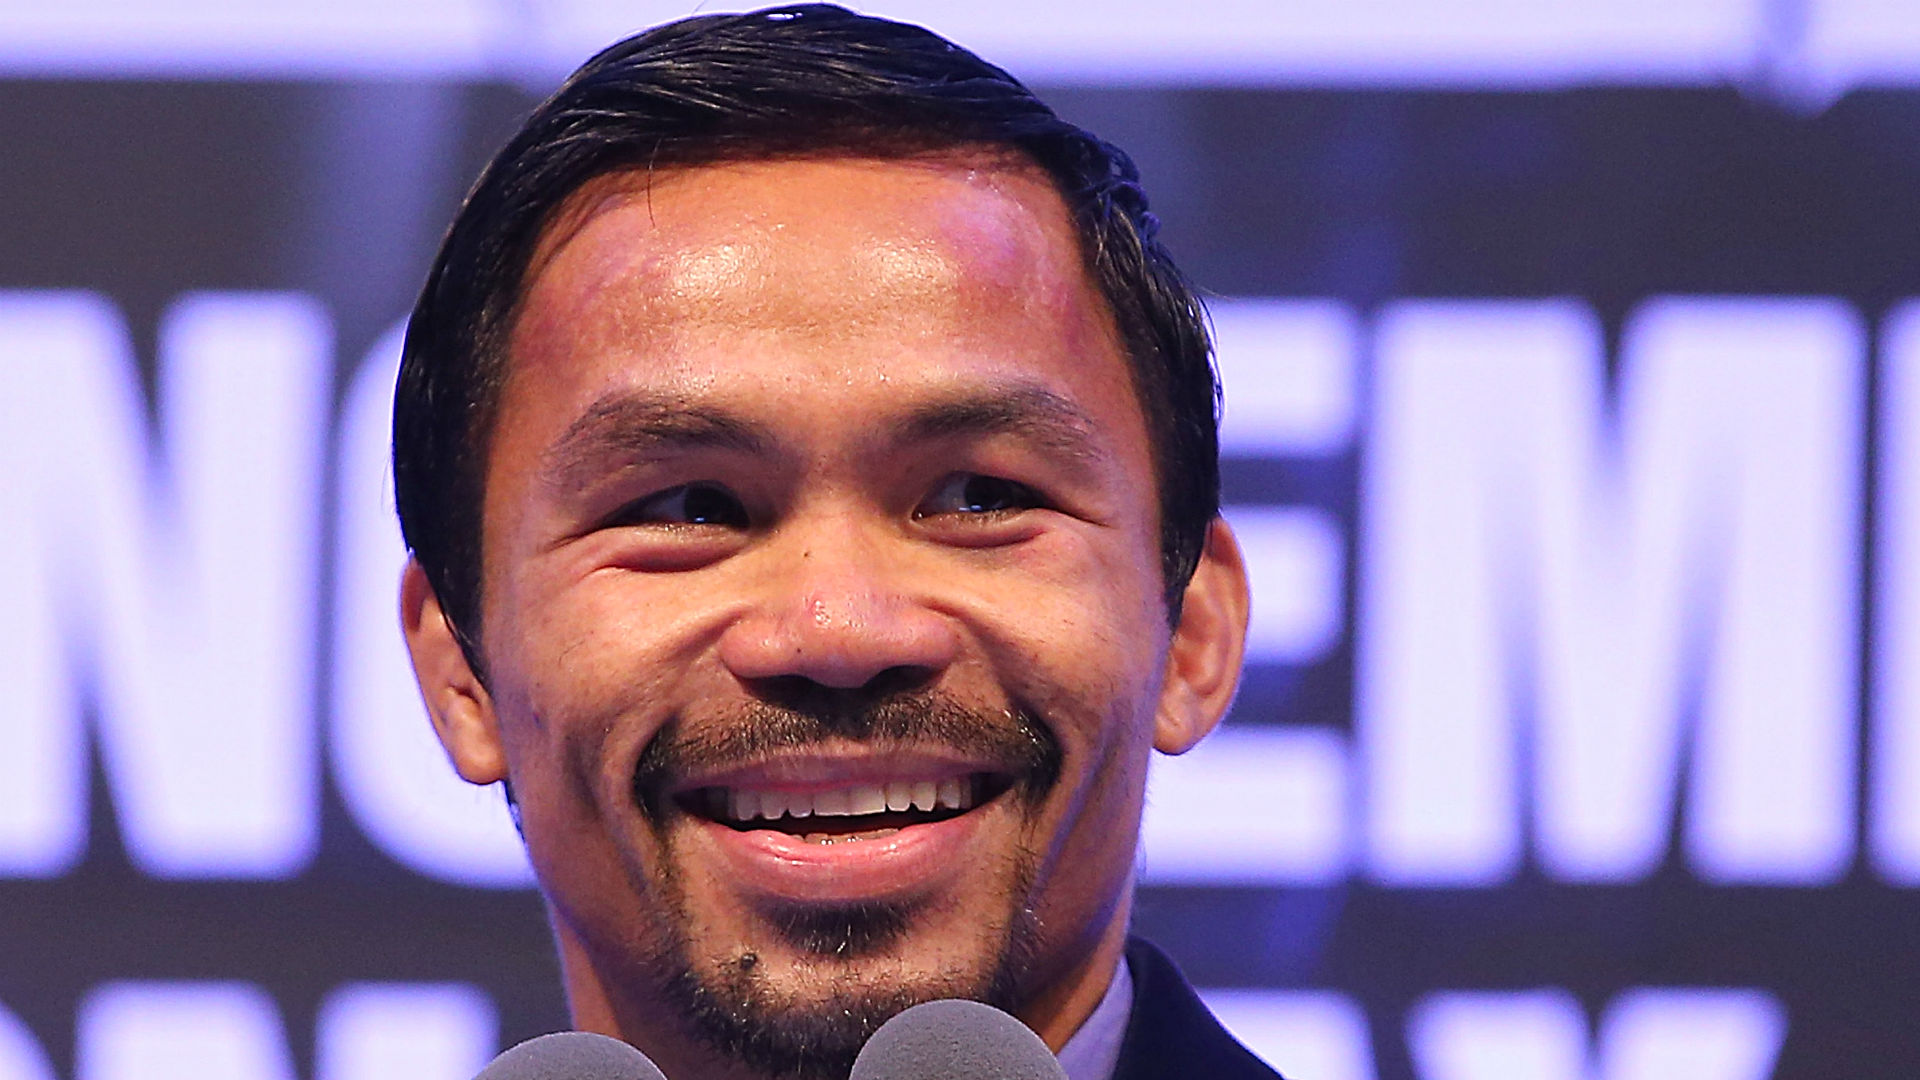 Manny-Pacquiao-011715-Getty-FTR.jpg